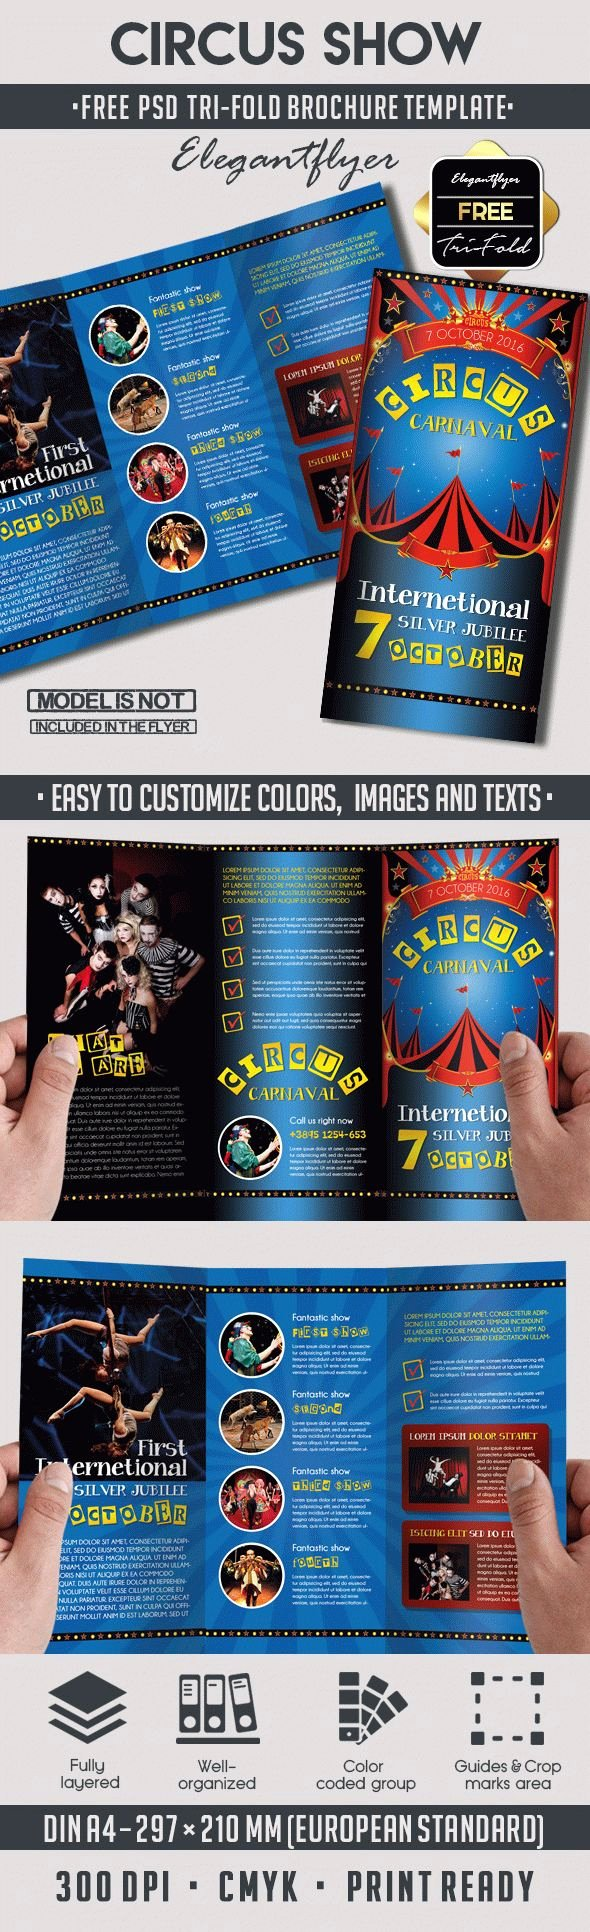 Circus – Free Psd Tri Fold Psd Brochure Template – by